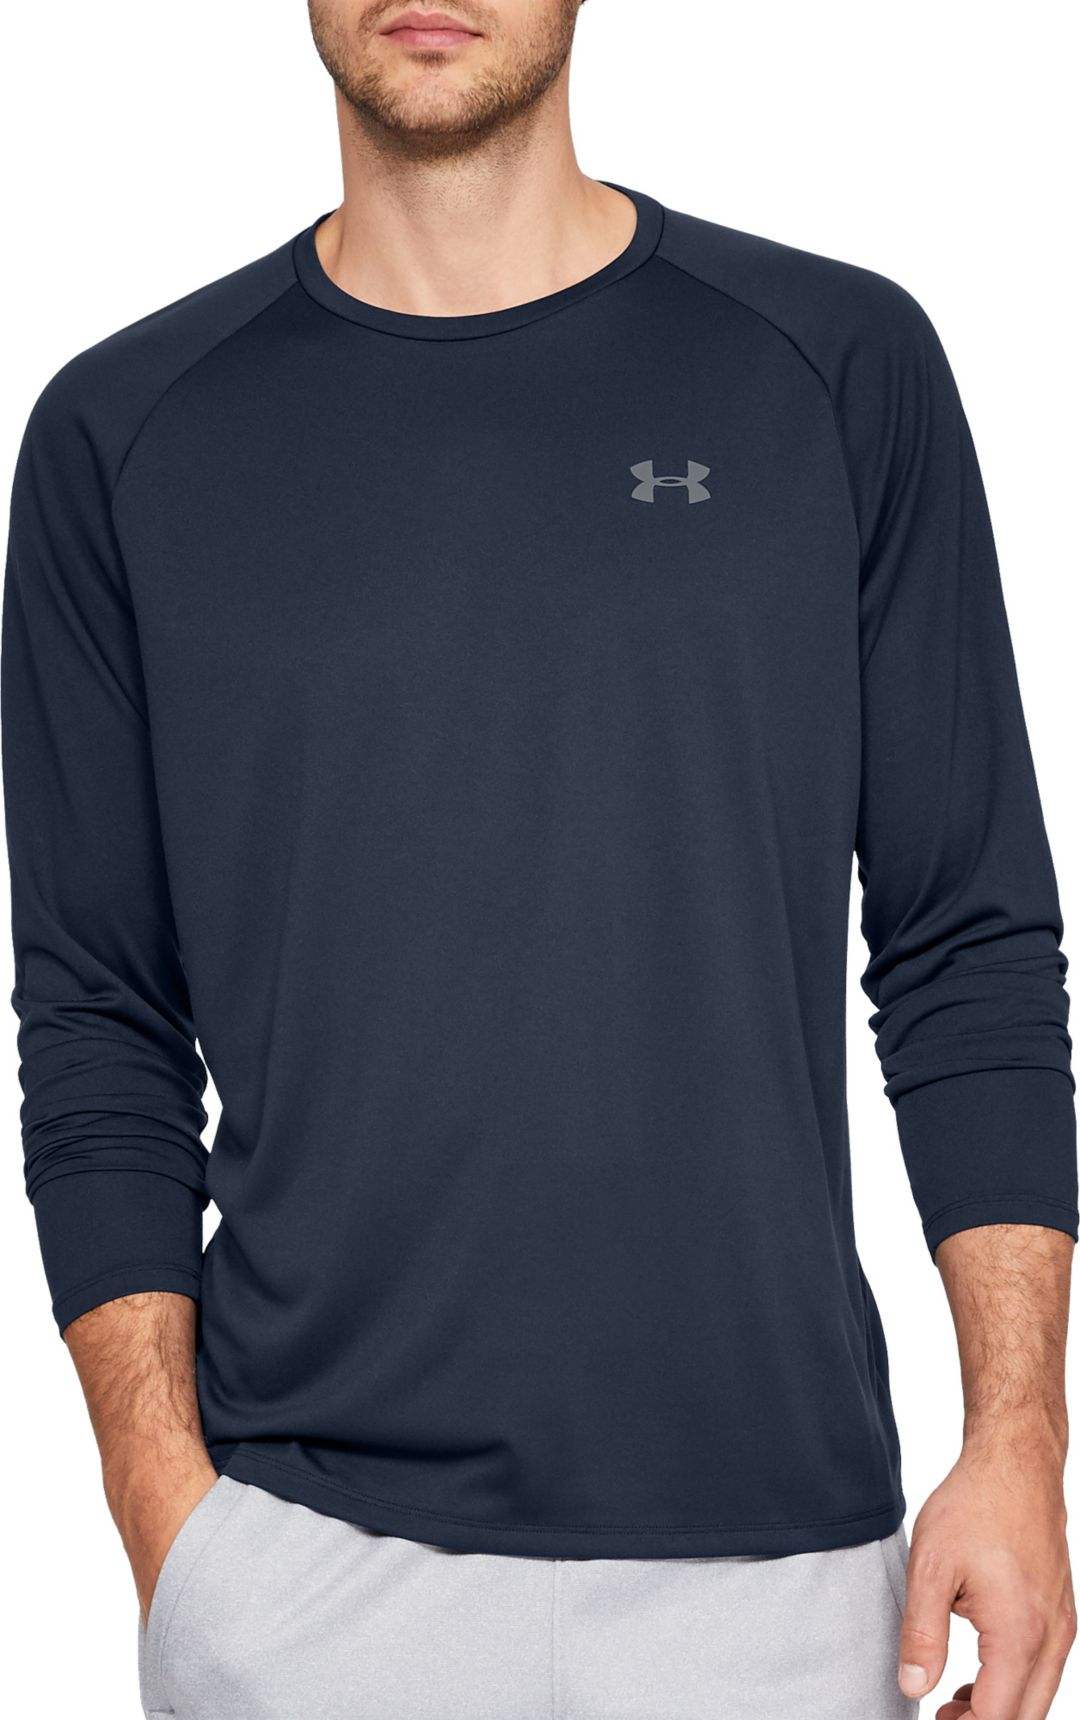 b1dd6bd09 Under Armour Men's Tech Long Sleeve Shirt | DICK'S Sporting Goods